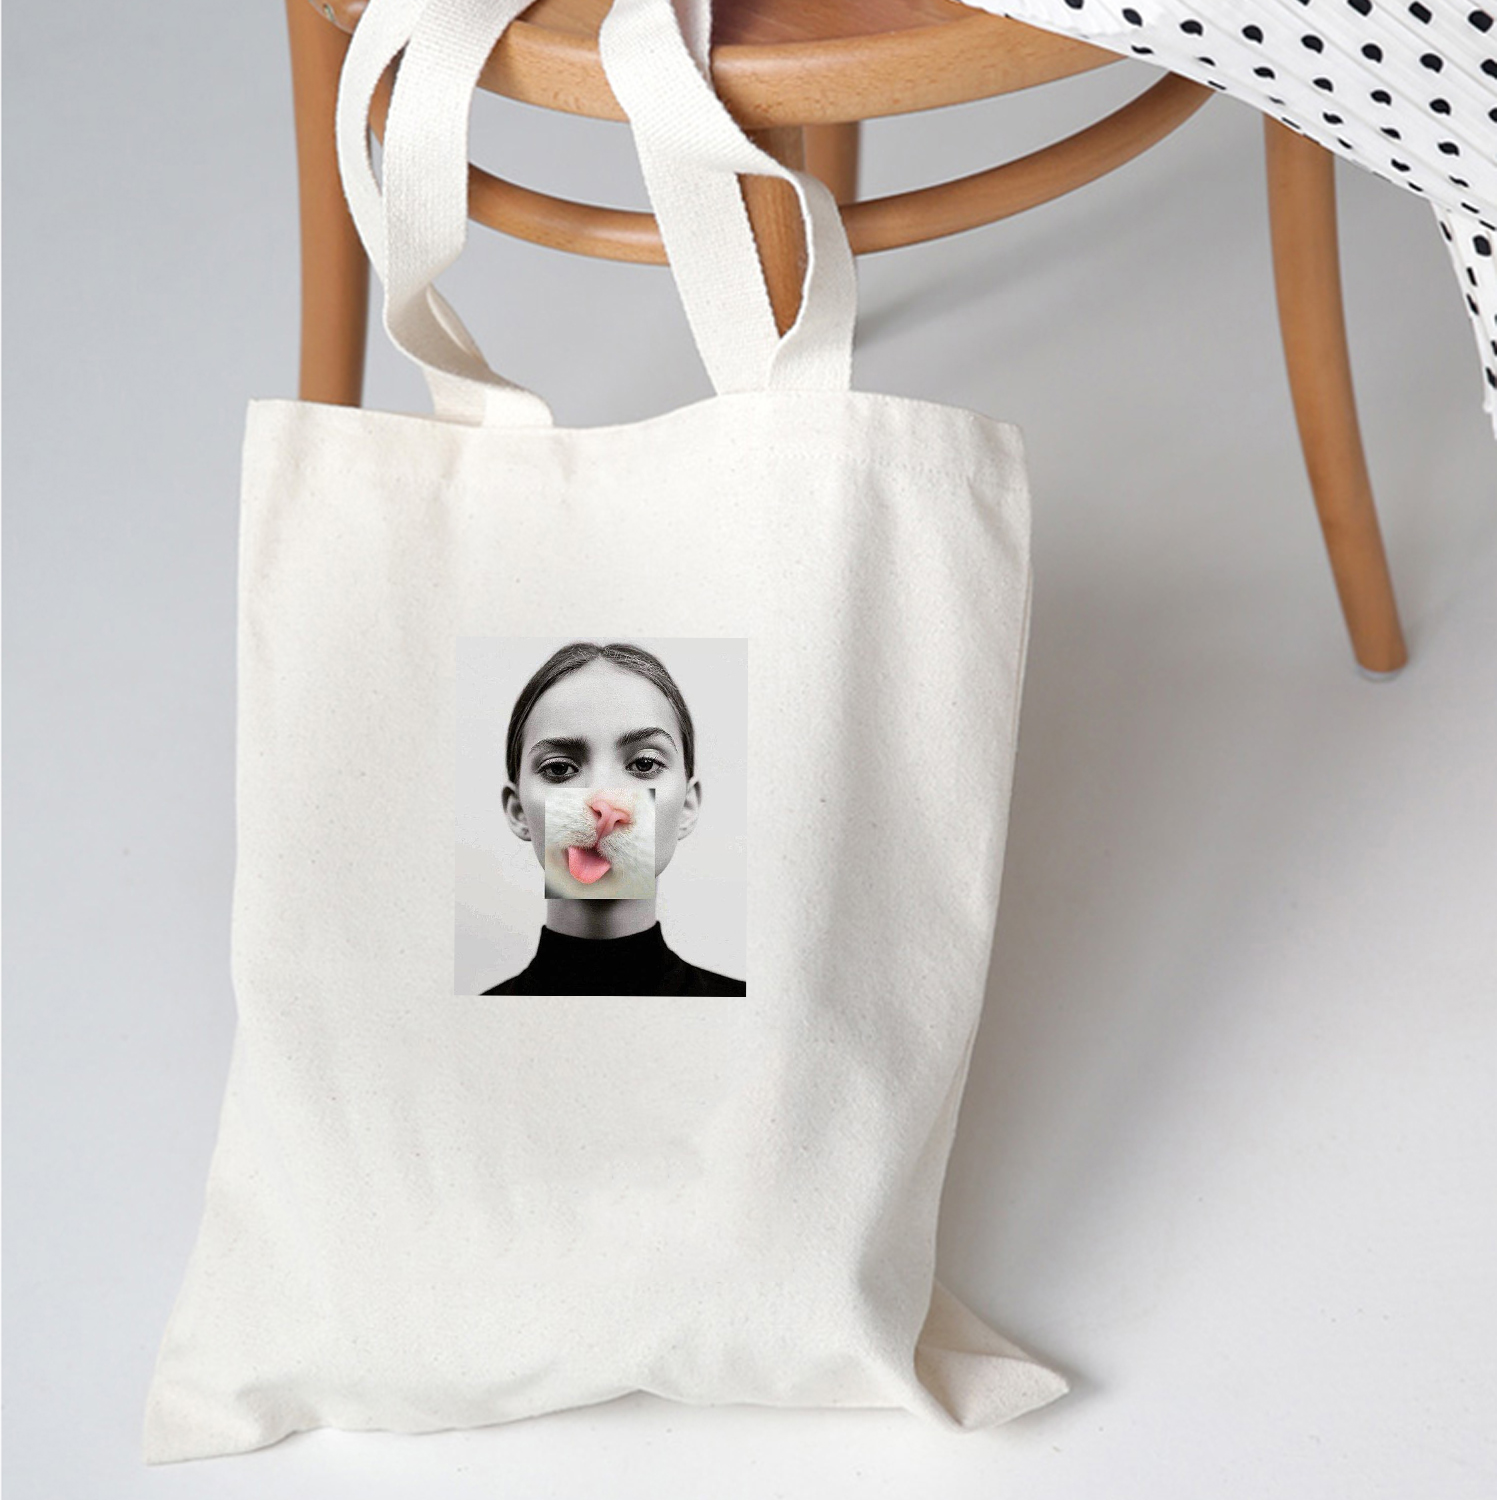 Funny Picture Print Women Shopping Bag Female Canvas  Shoulder Bag Environmental Storage Handbag Reusable Foldable Cool Totes